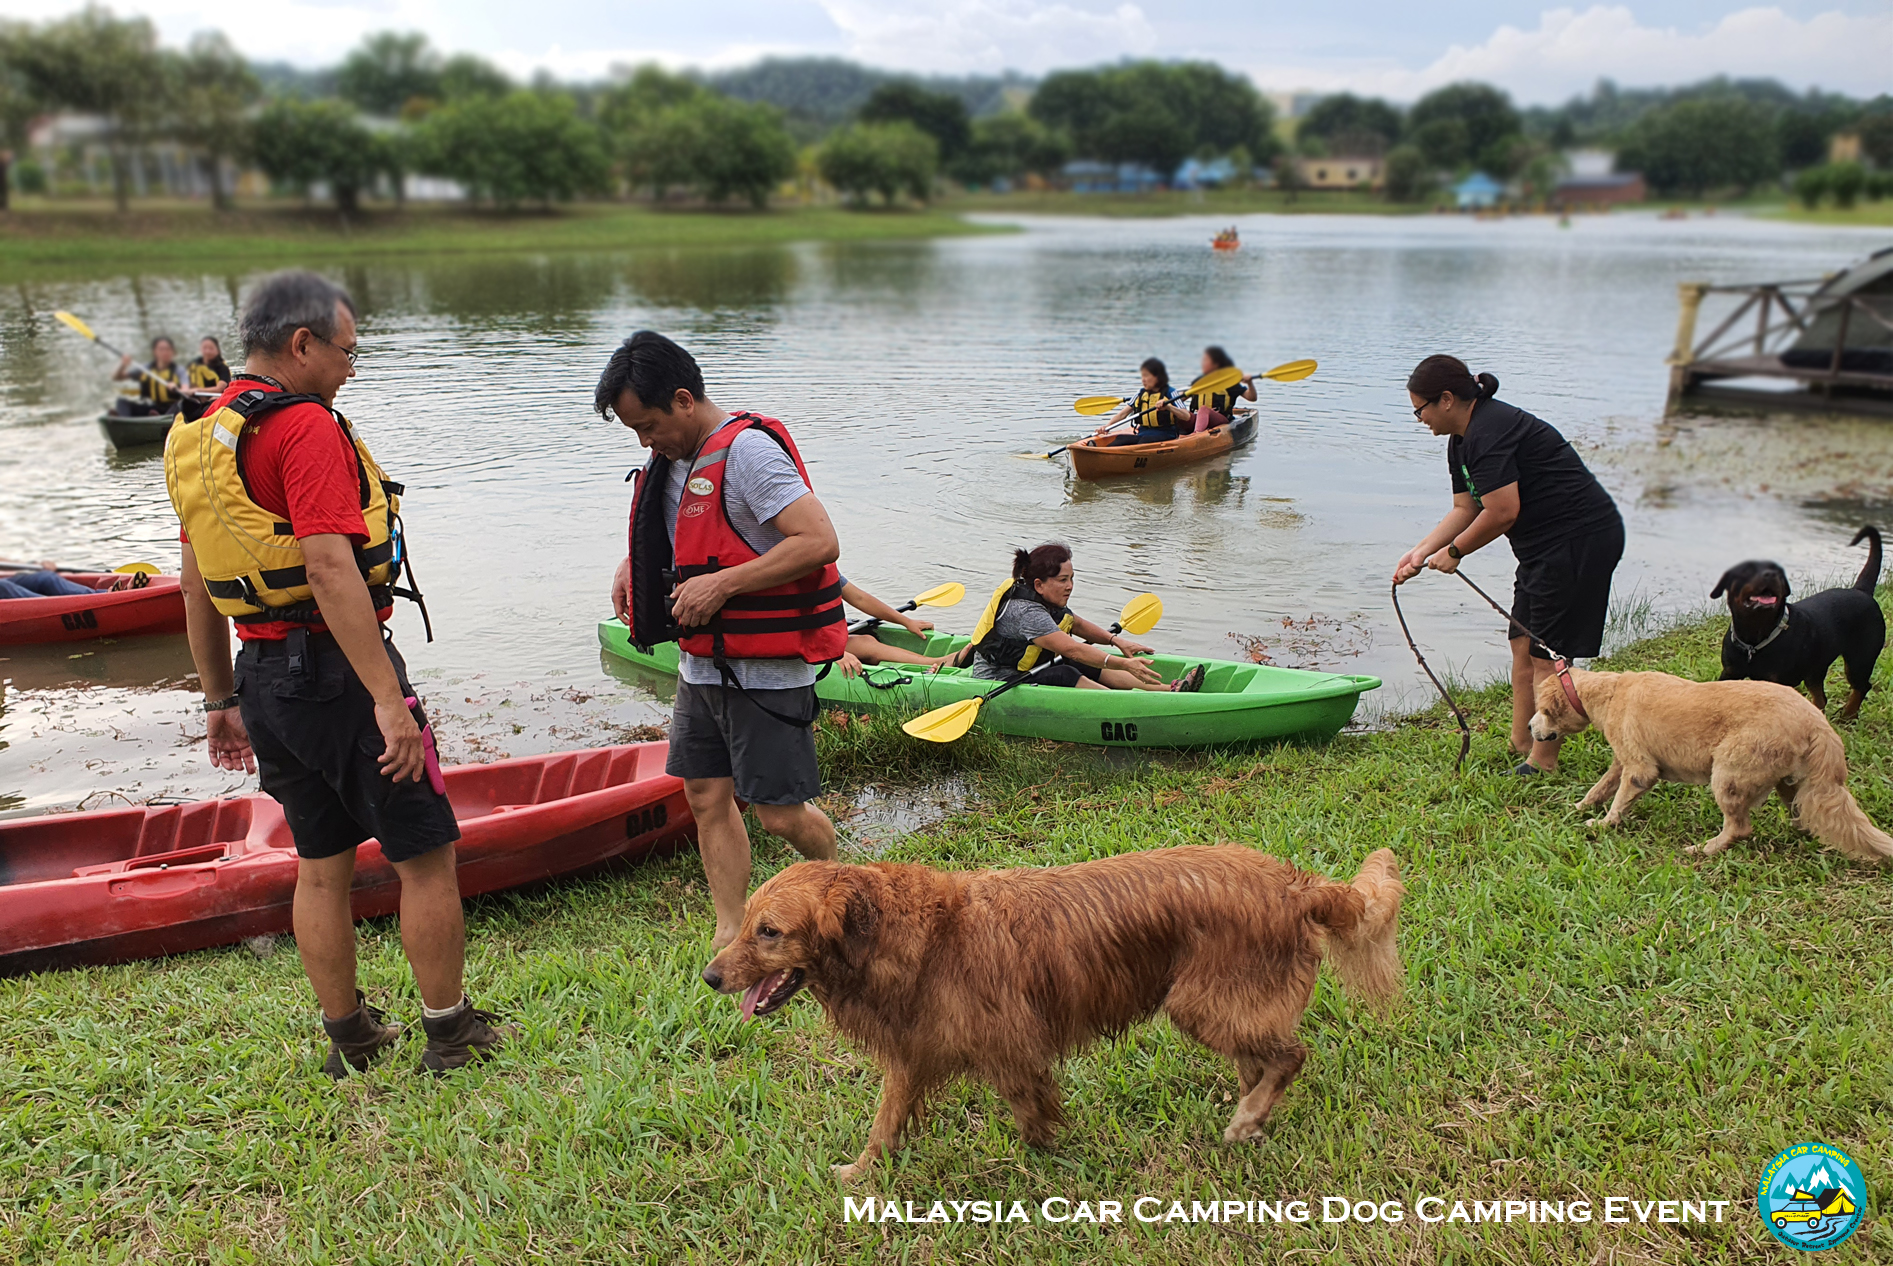 kayaking_dog_dog_camping_event_selangor_camping_site_malaysia_car_camping_private_event_organizer-2